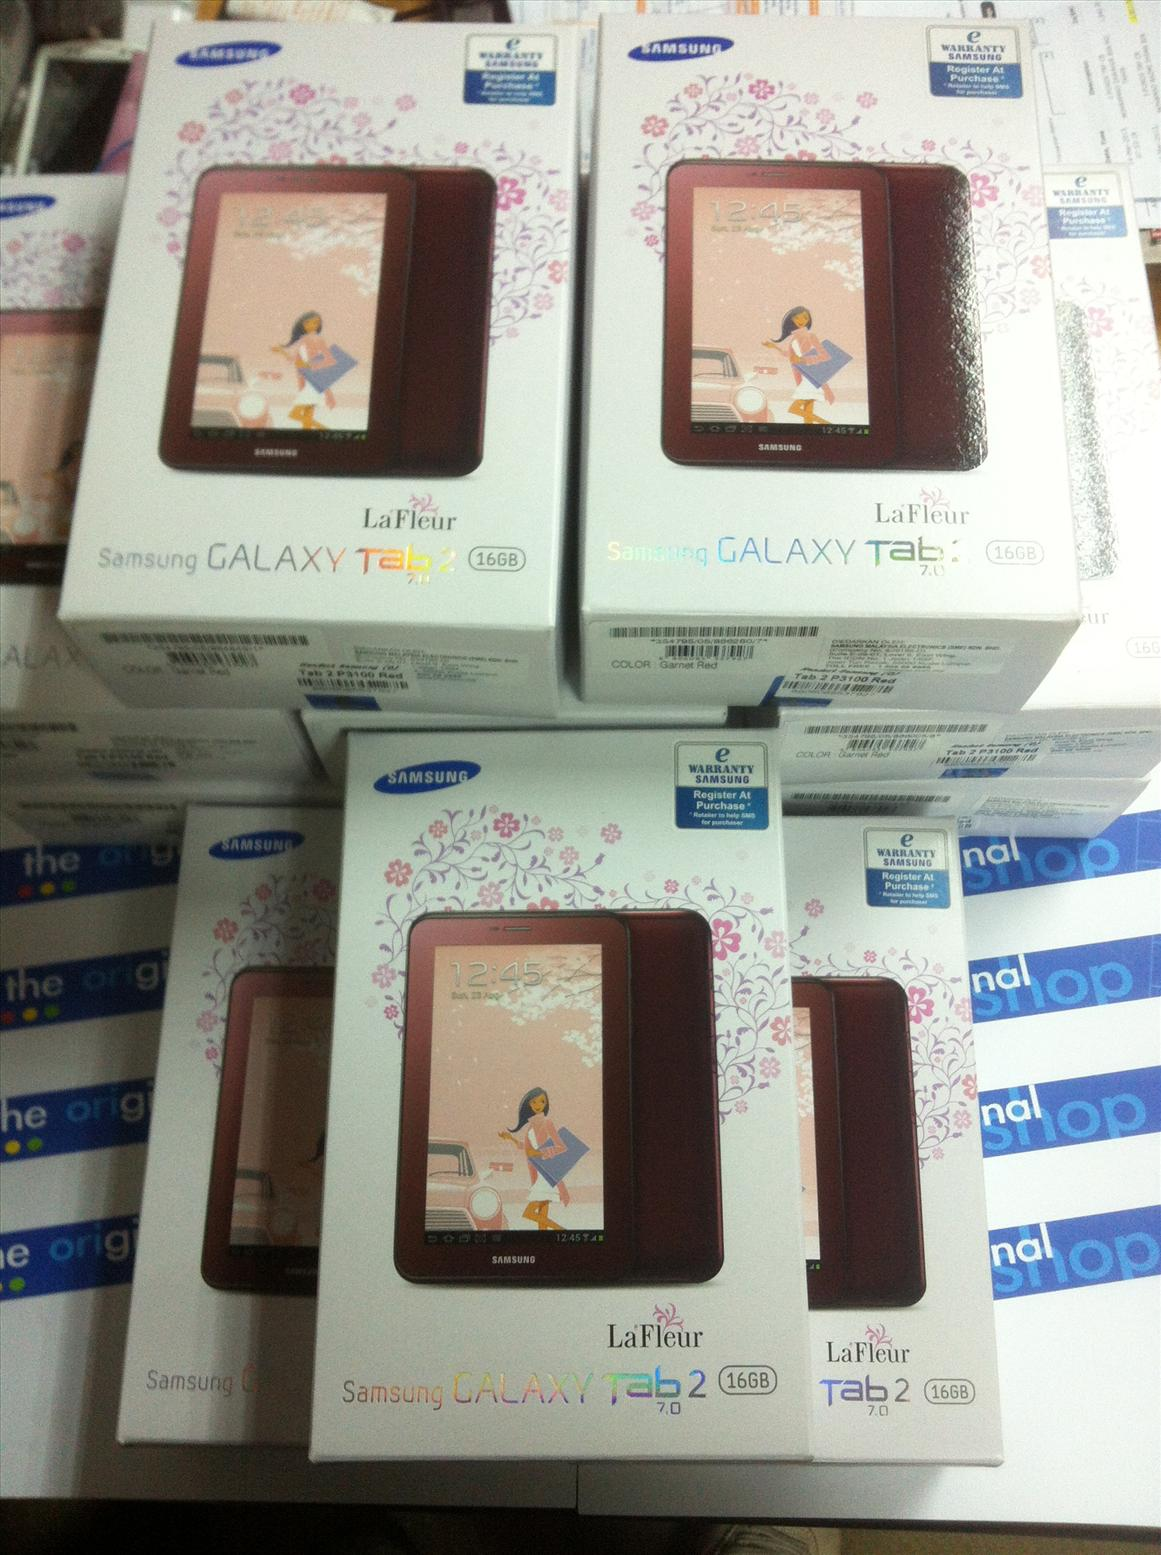 samsung galaxy tab 7 0 lafleur series original sme 1 year warranty